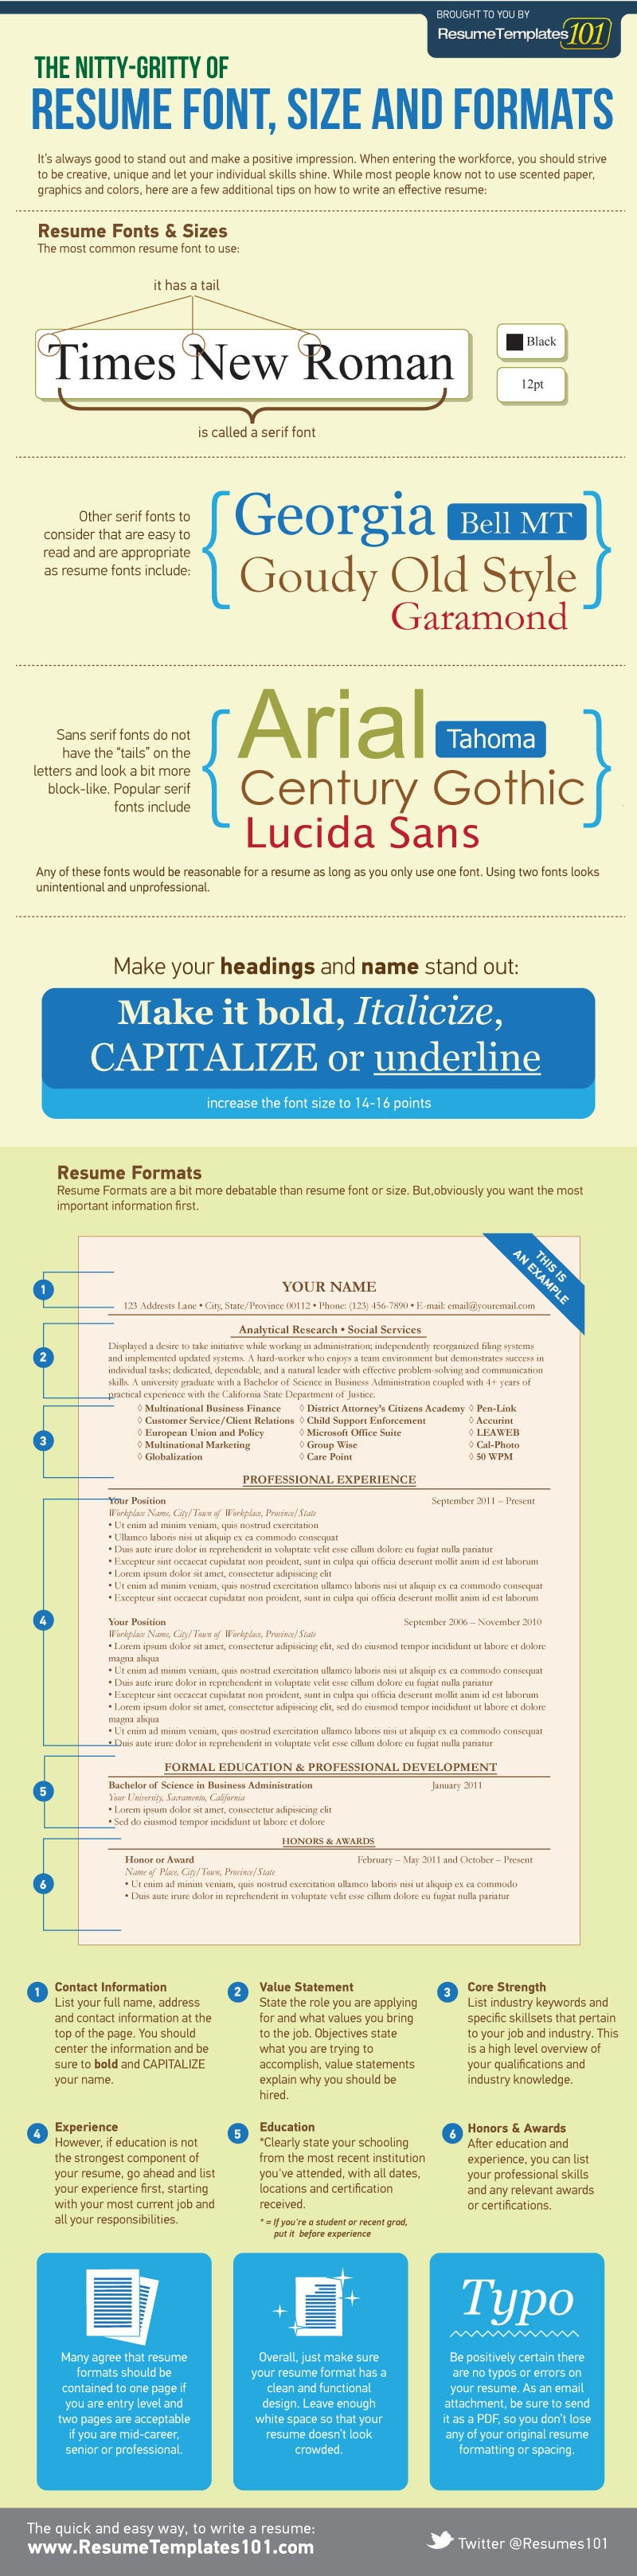 what is the best resume font size and format infographic